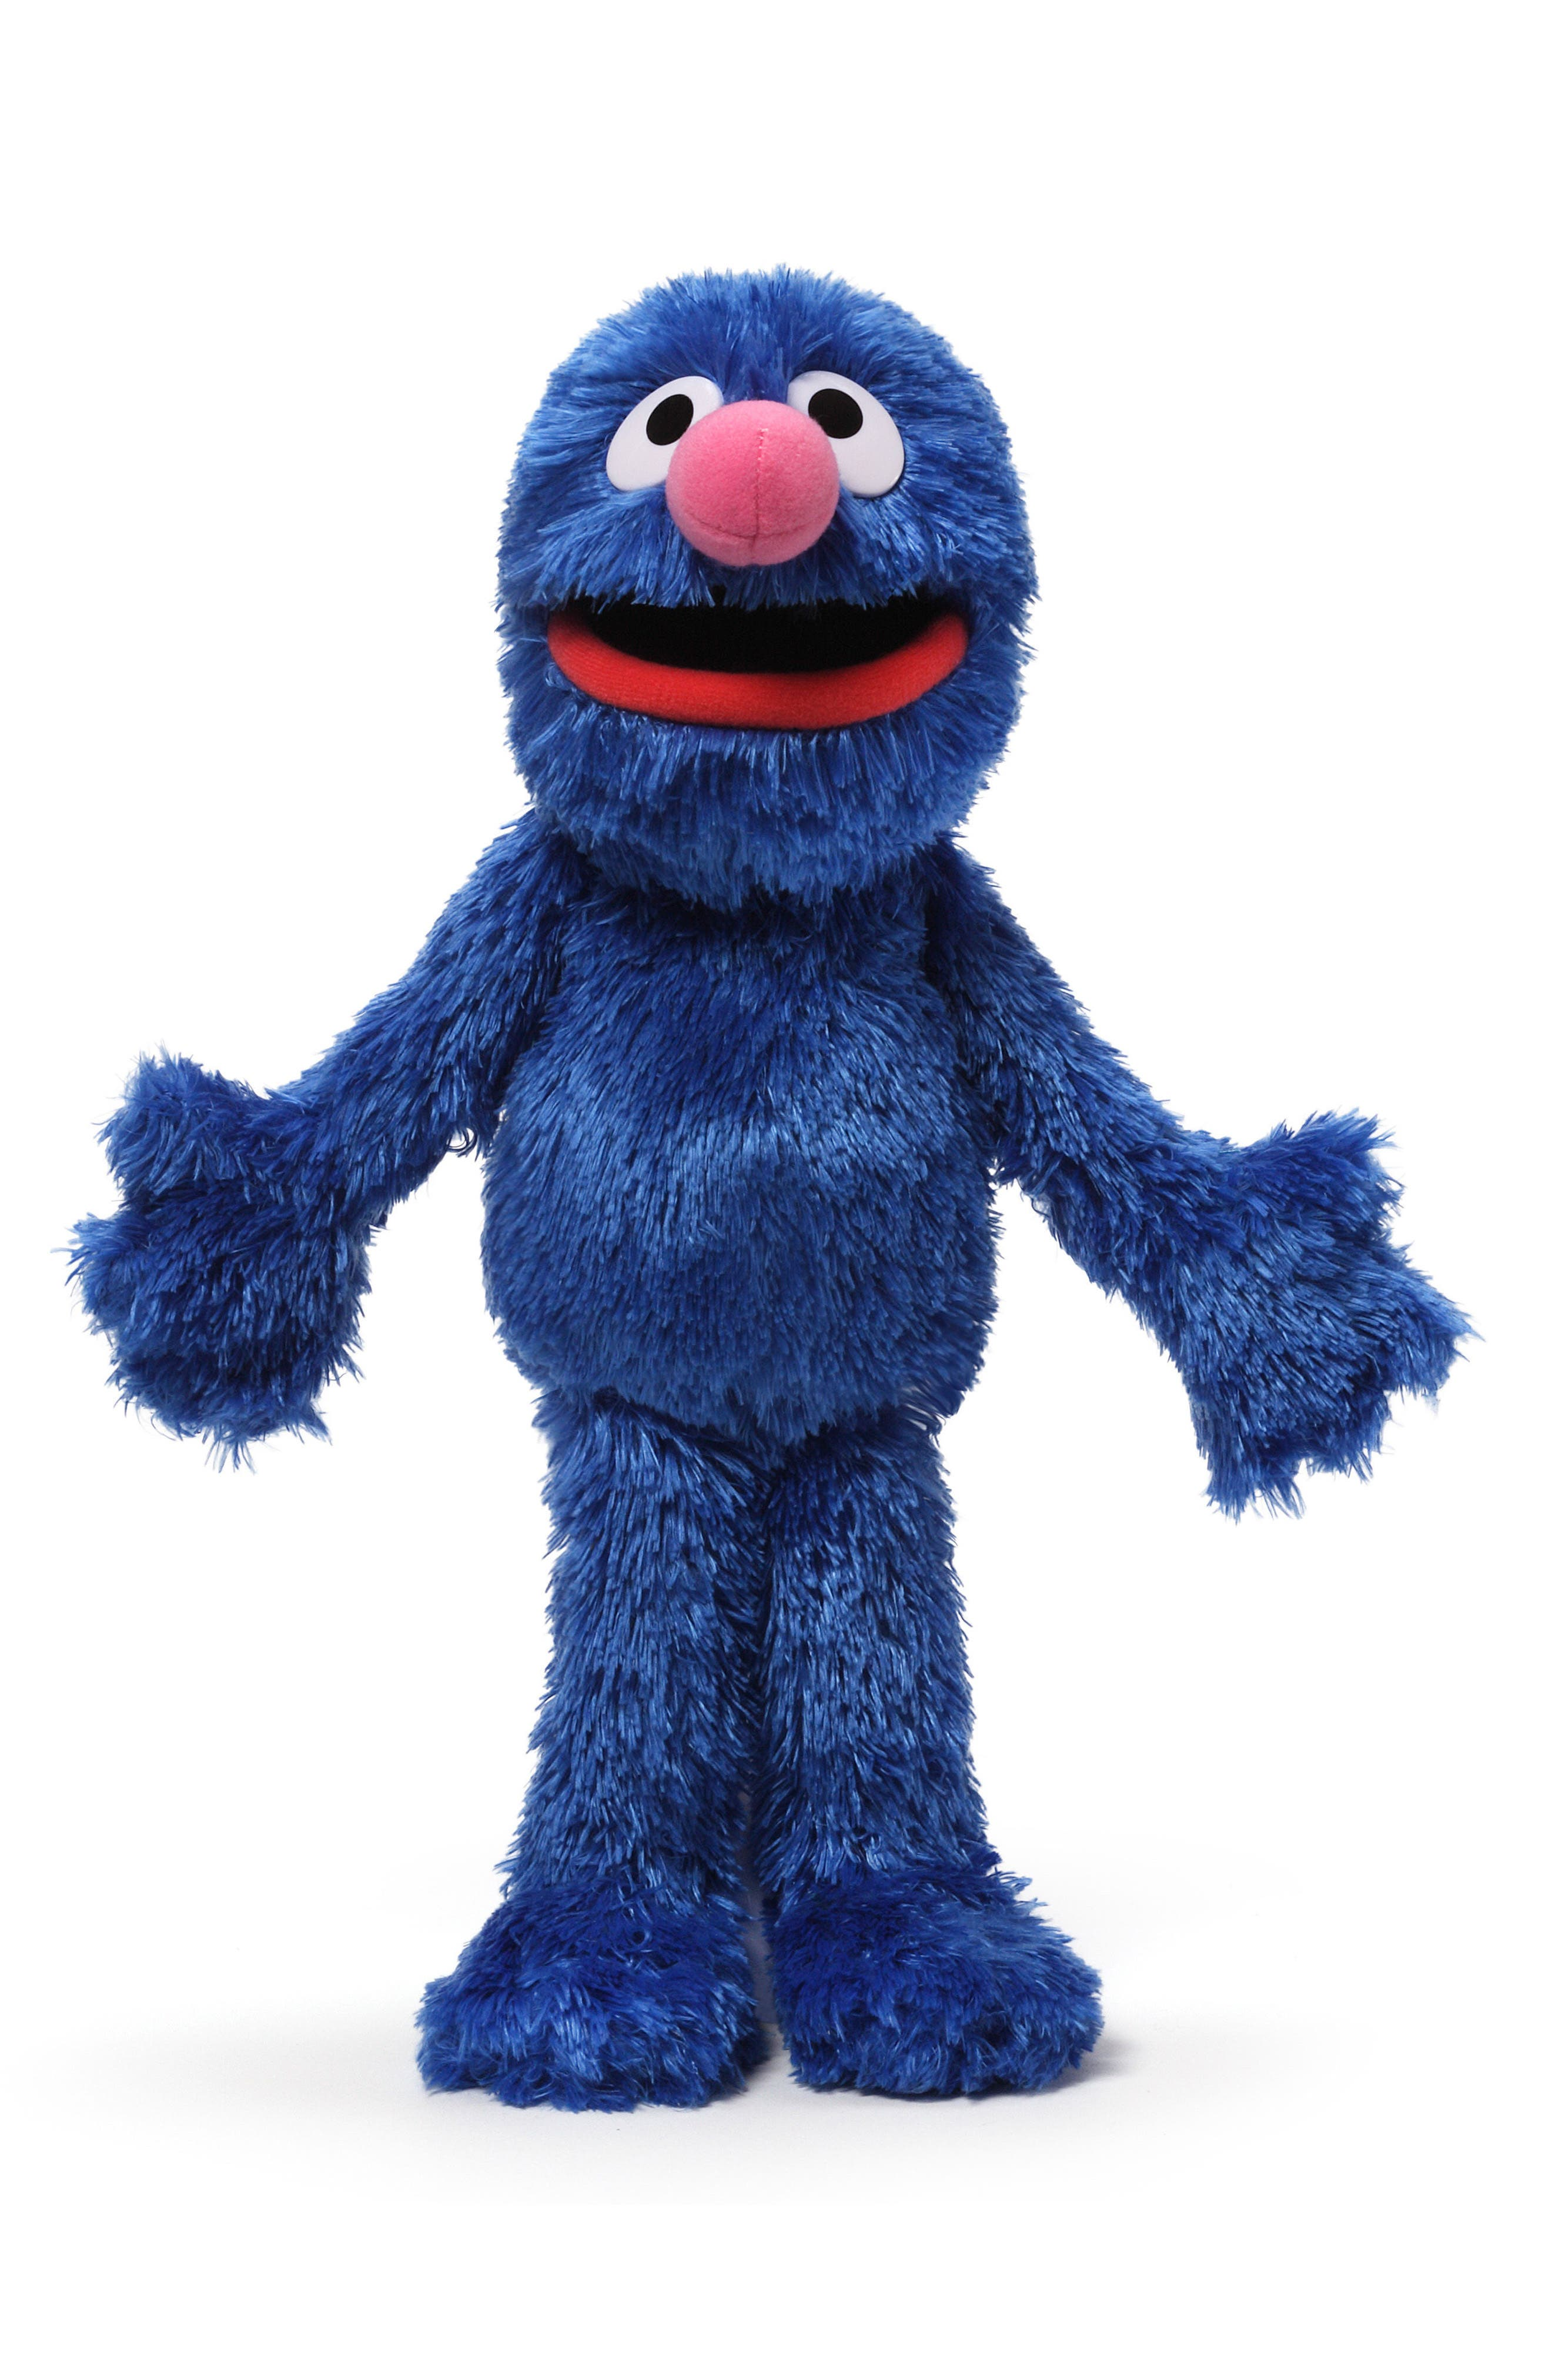 Alternate Image 1 Selected - Gund 'Grover' Stuffed Toy